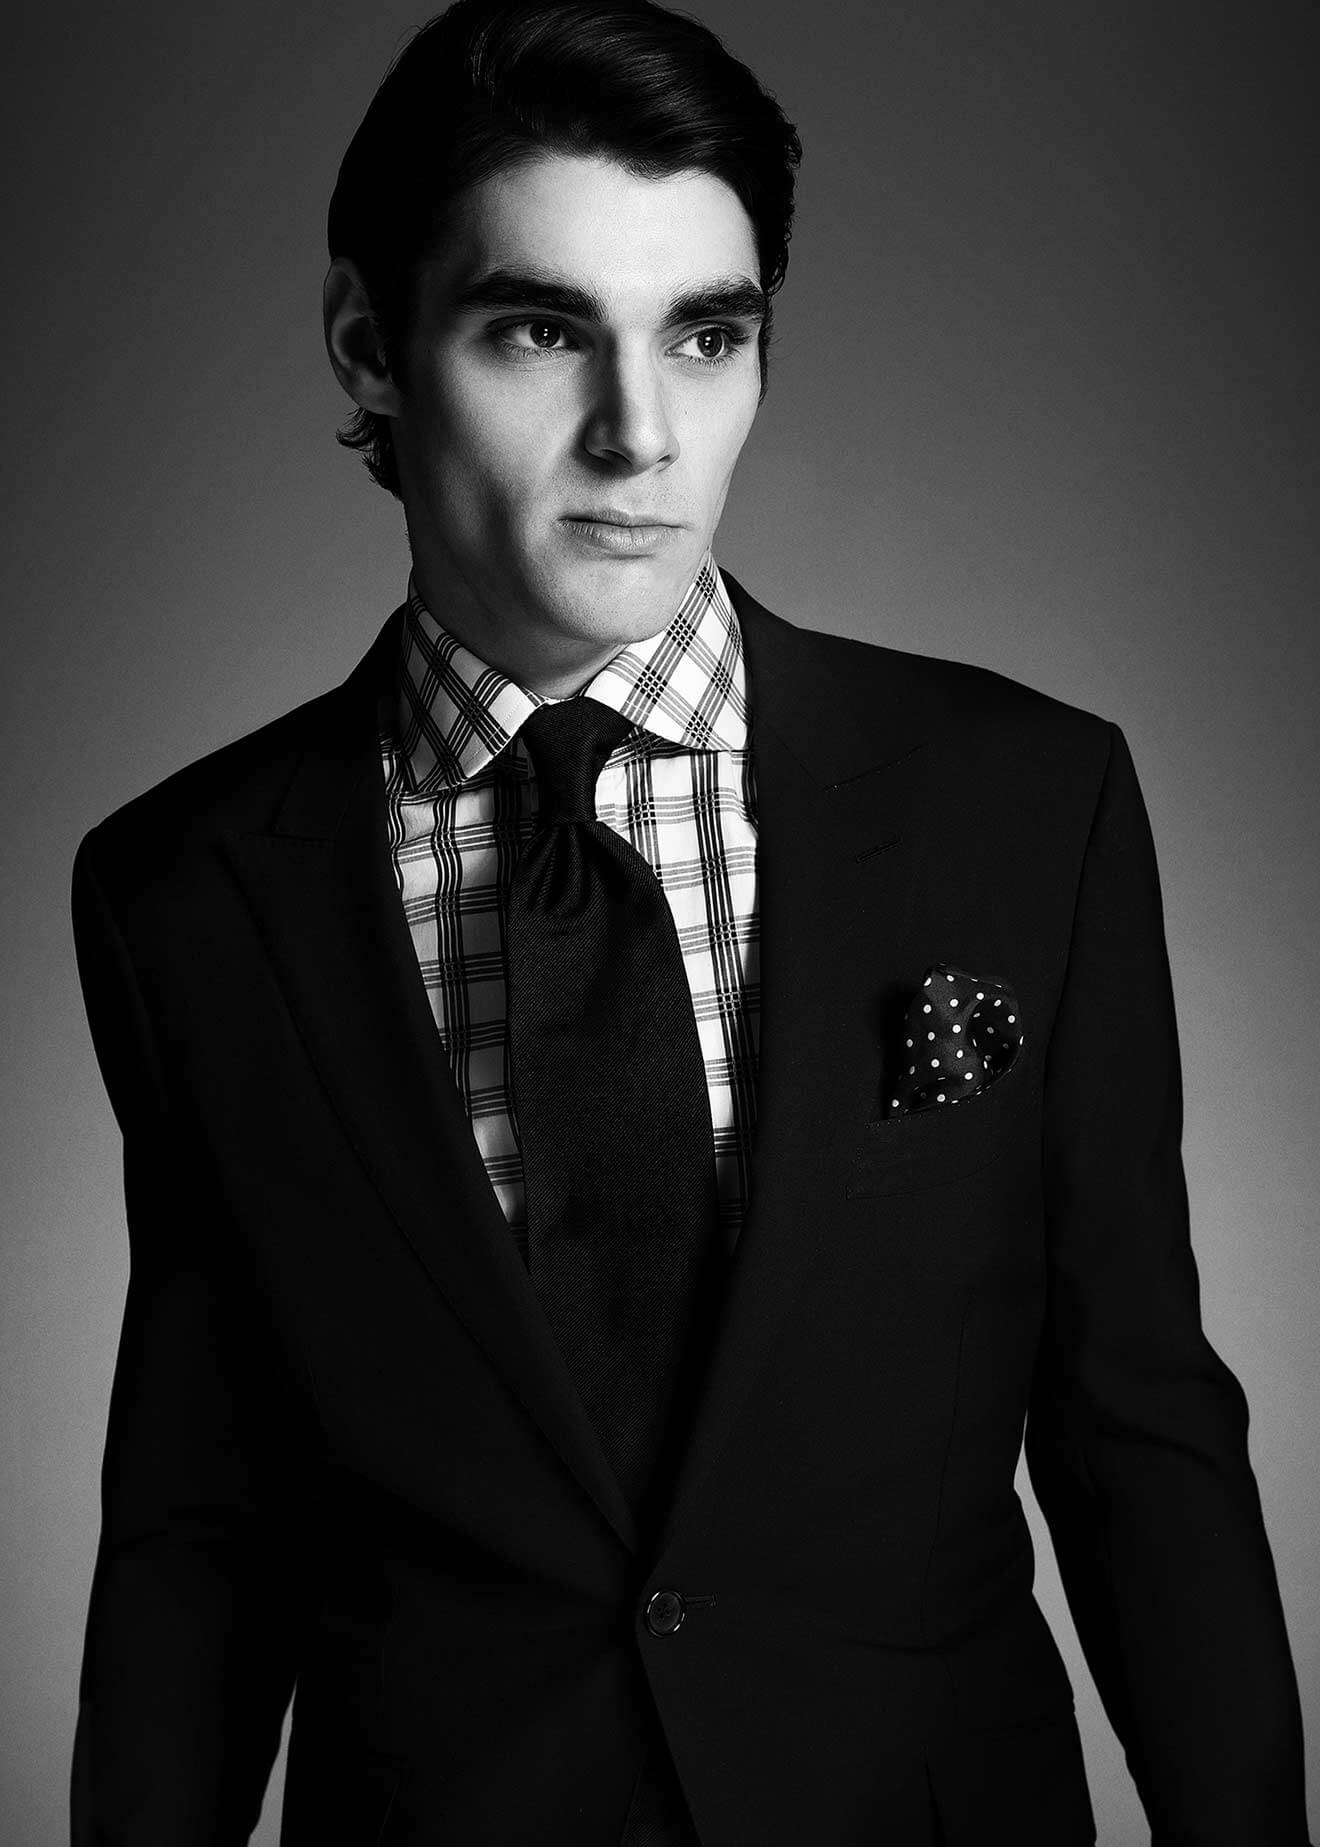 Chillin' with RJ Mitte, serious, front pose, tux